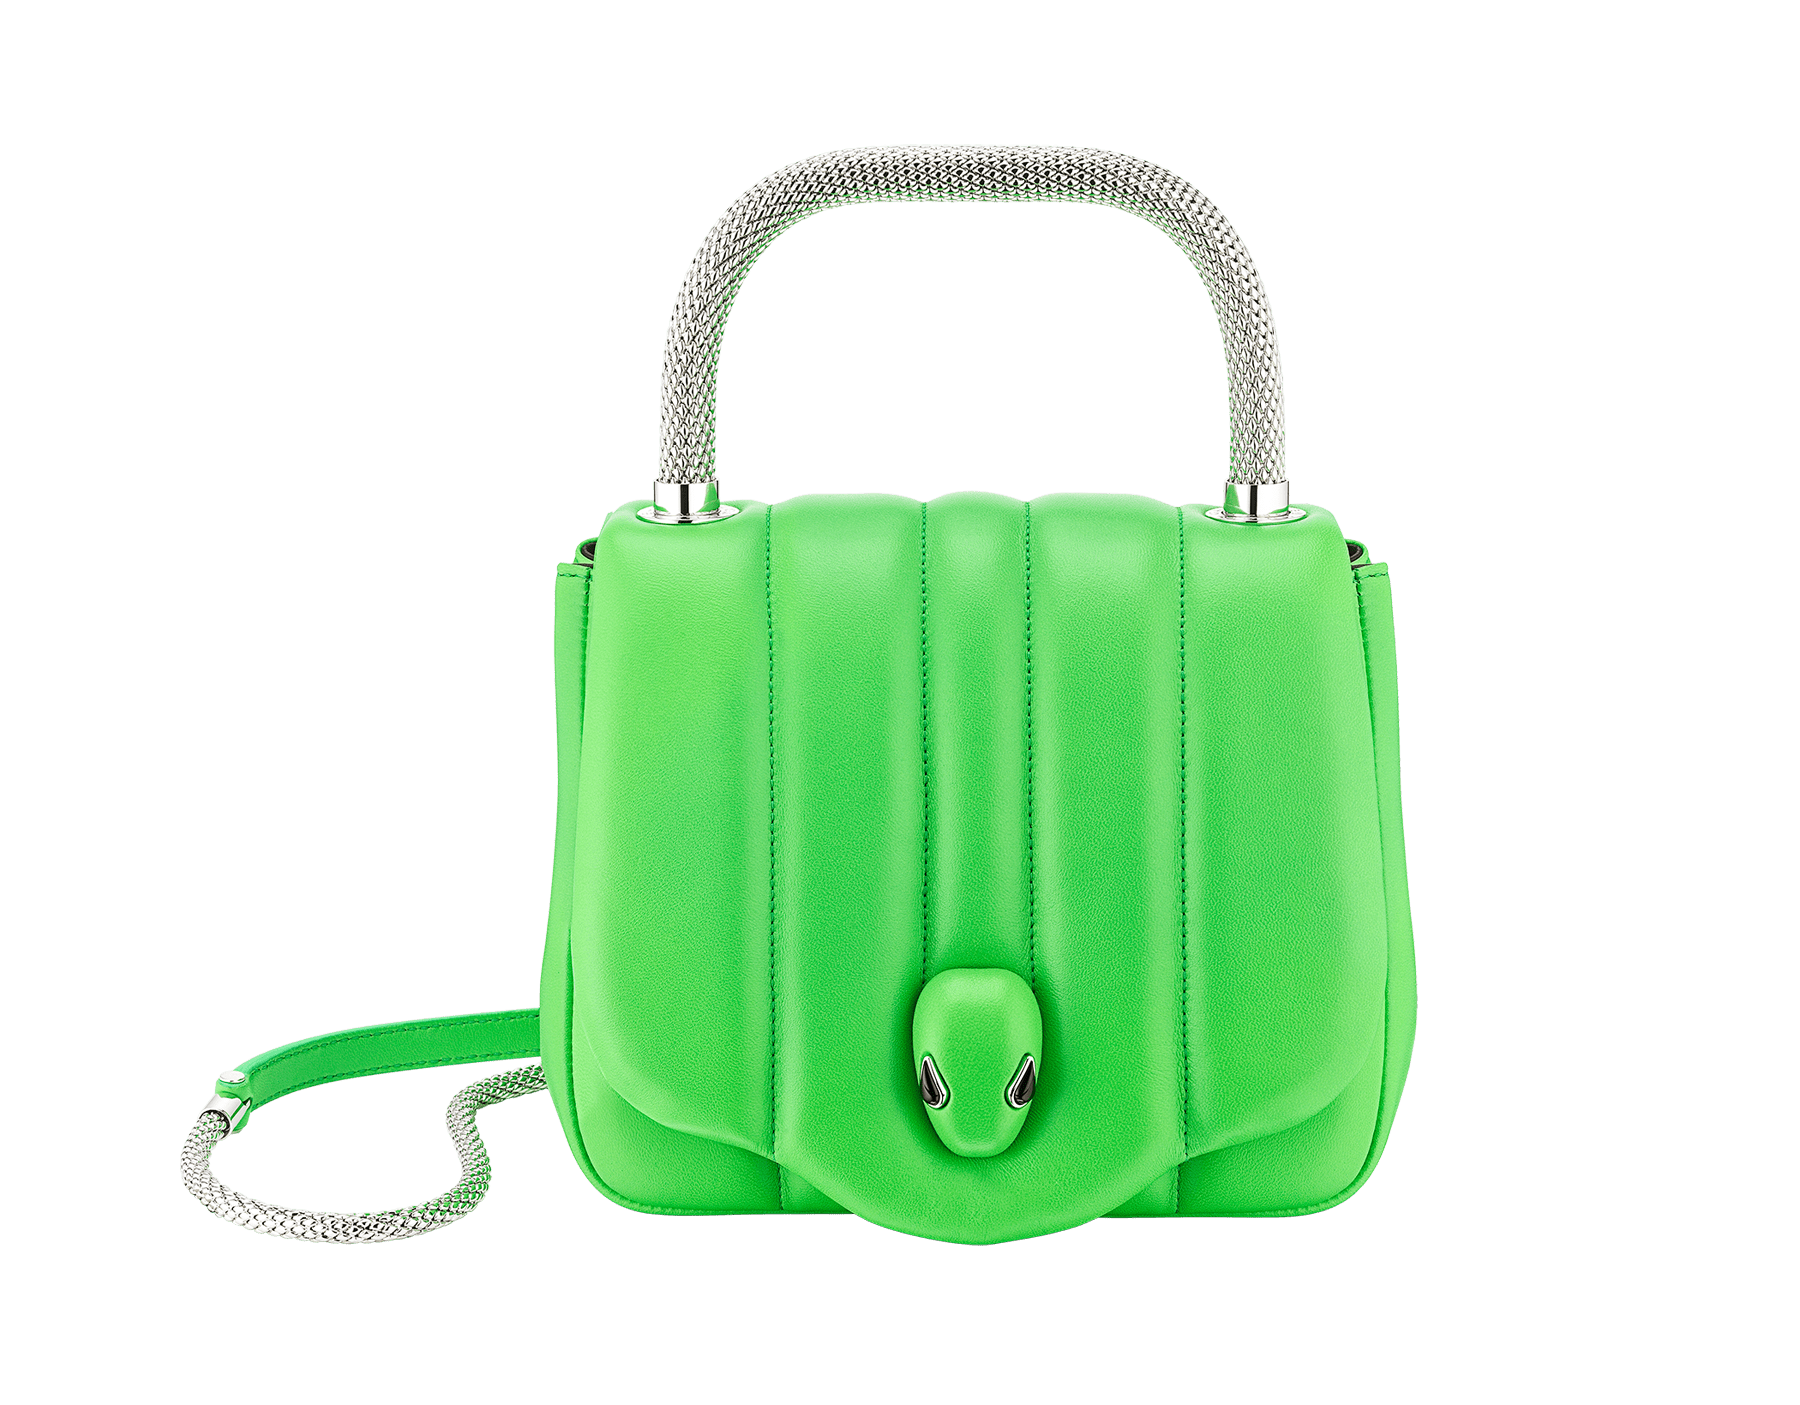 """Ambush x Bvlgari"" top handle bag in bright green nappa leather. New Serpenti head closure in palladium plated brass dressed with bright green nappa leather, finished with seductive black onyx eyes. Limited edition. 290346 image 1"